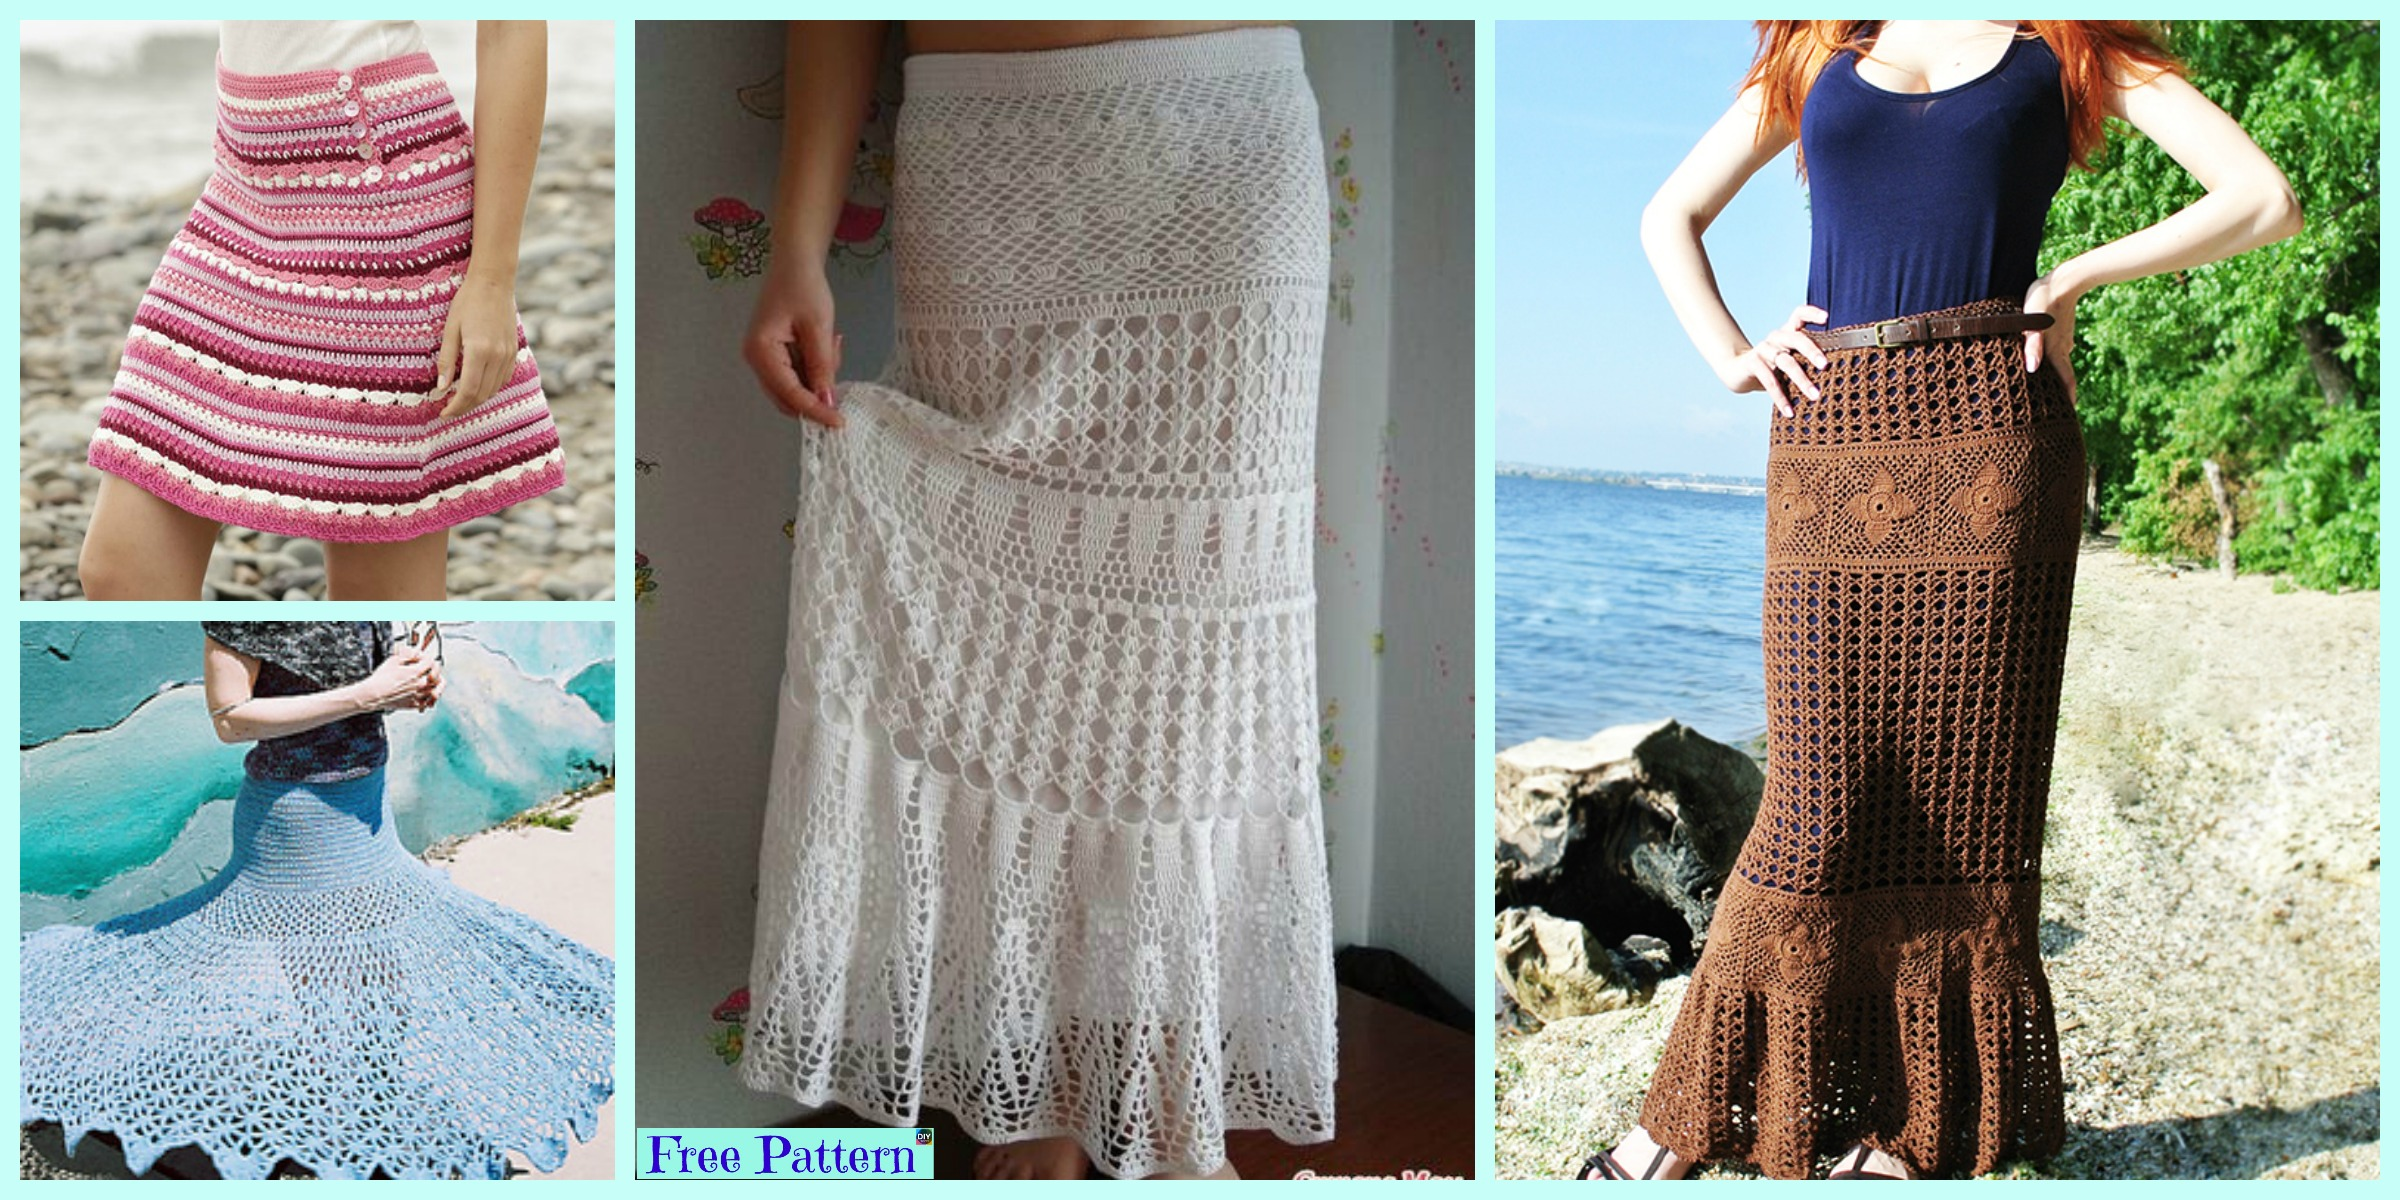 8 Beautiful Crochet Summer Skirt Free Patterns - DIY 4 EVER